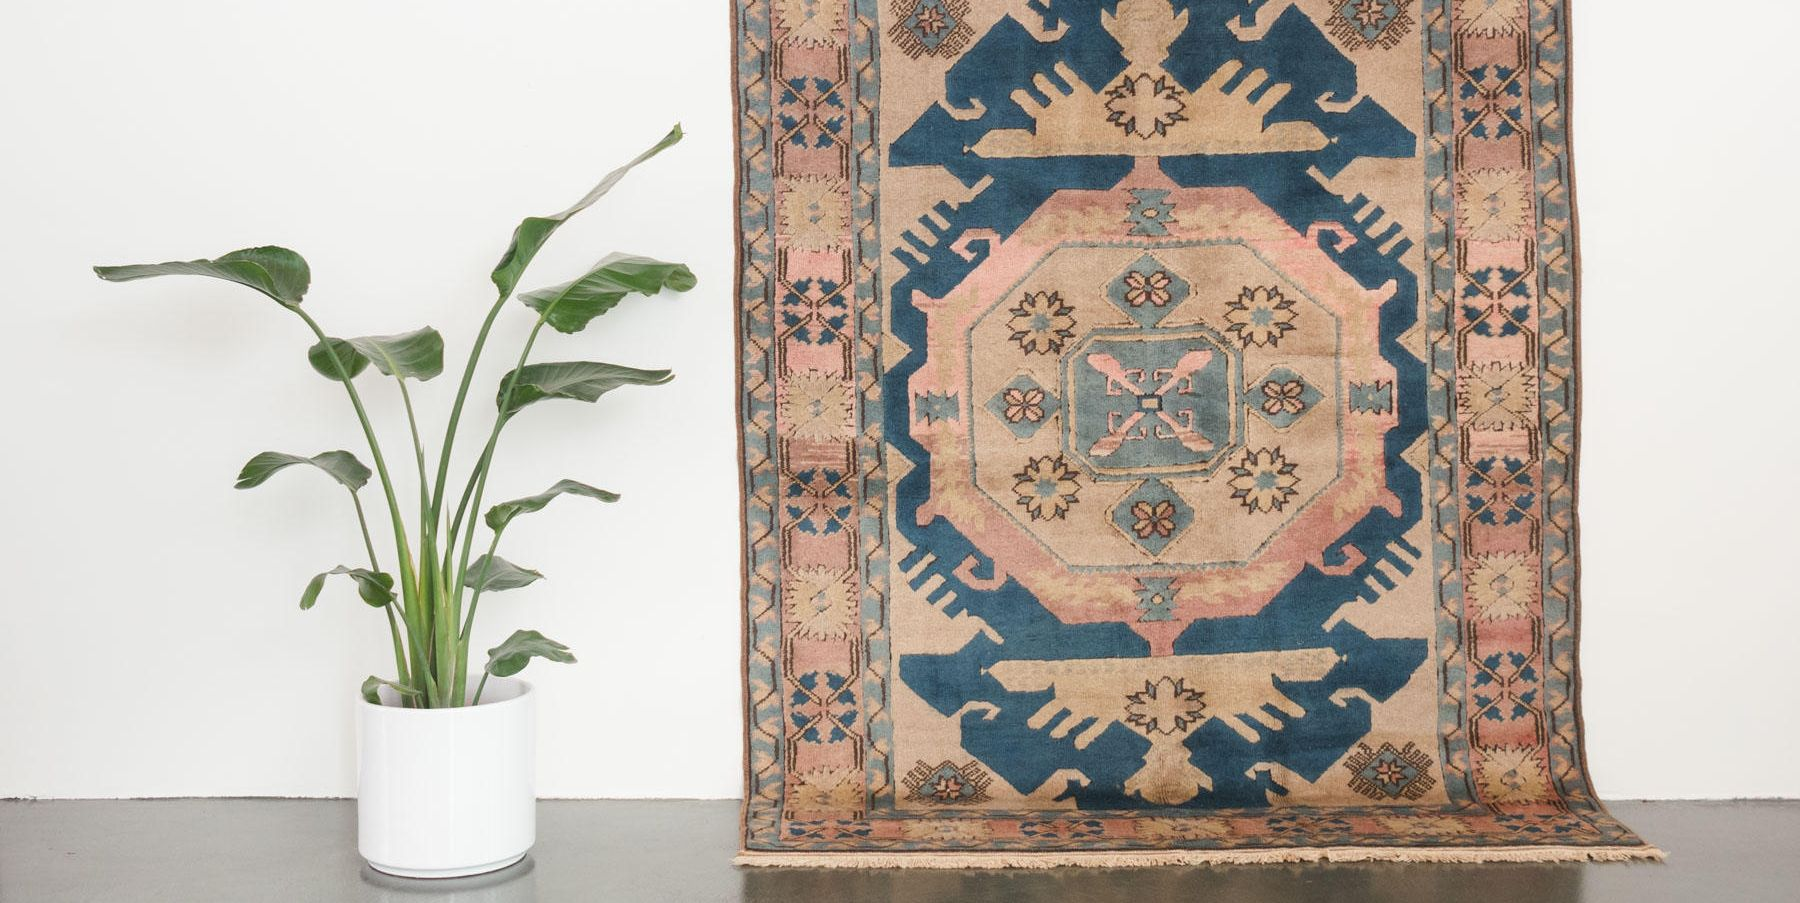 10 Amazing Places You've Never Heard Of To Buy Rugs Online